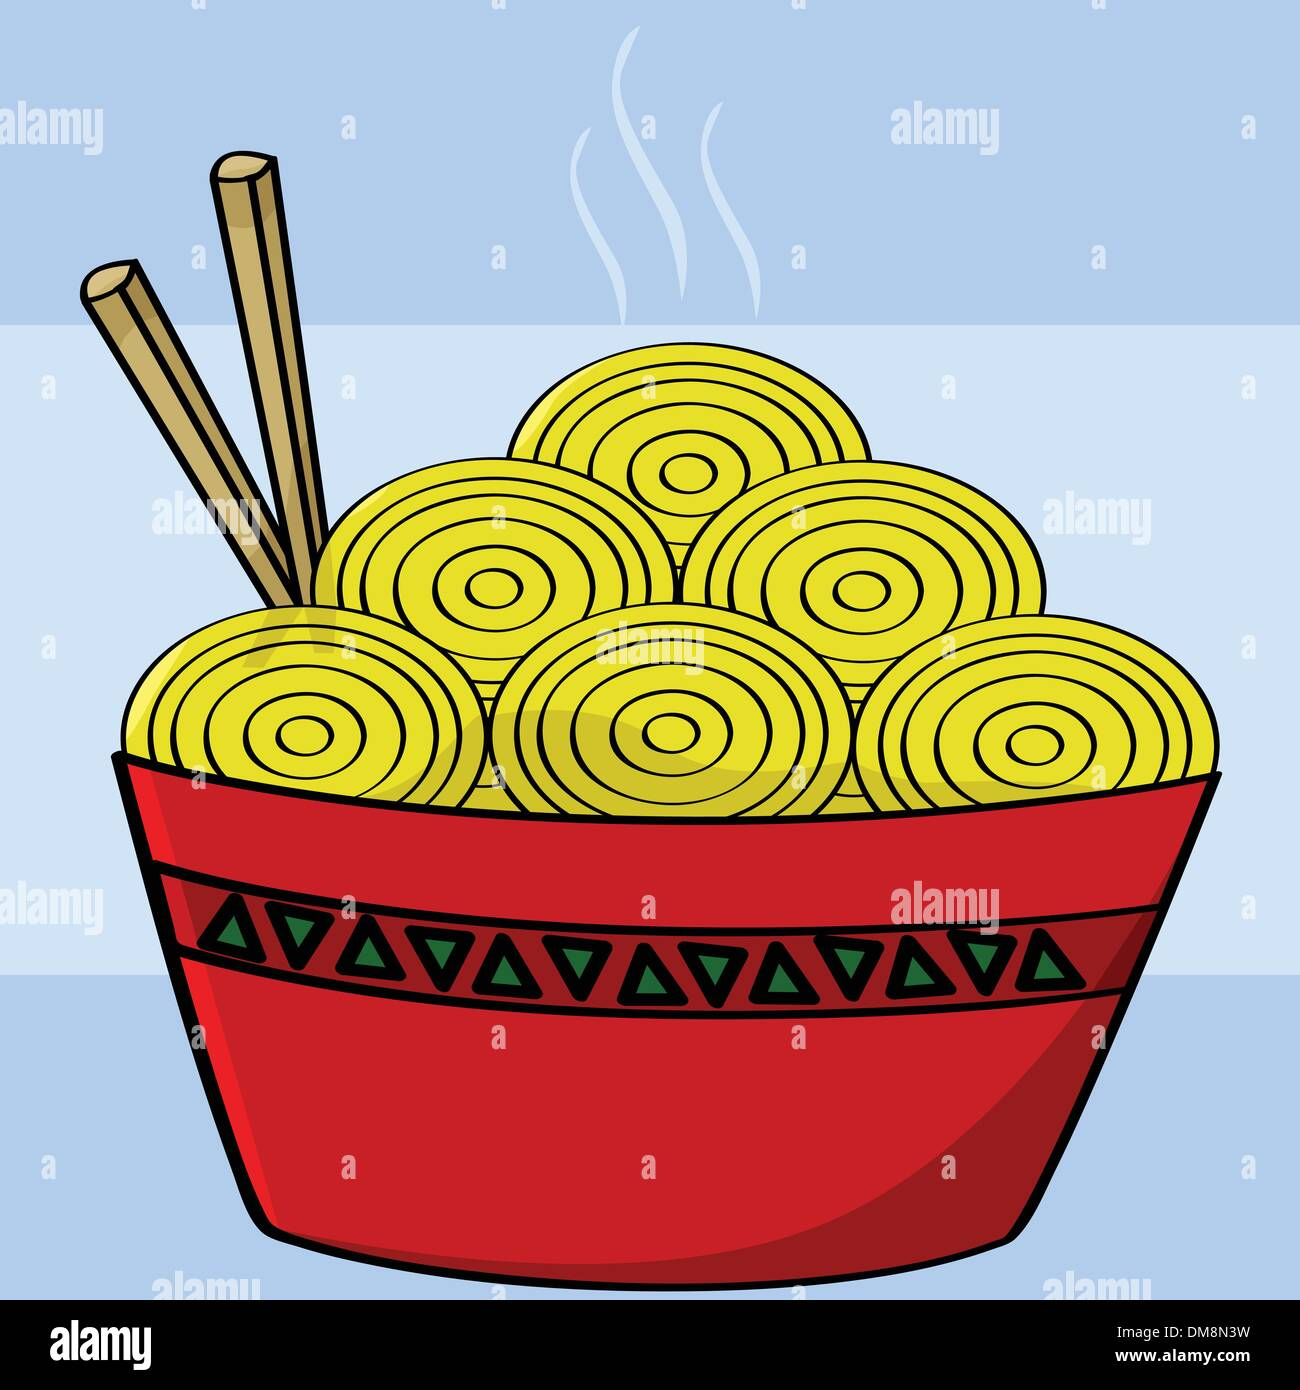 Bowl of noodles - Stock Vector